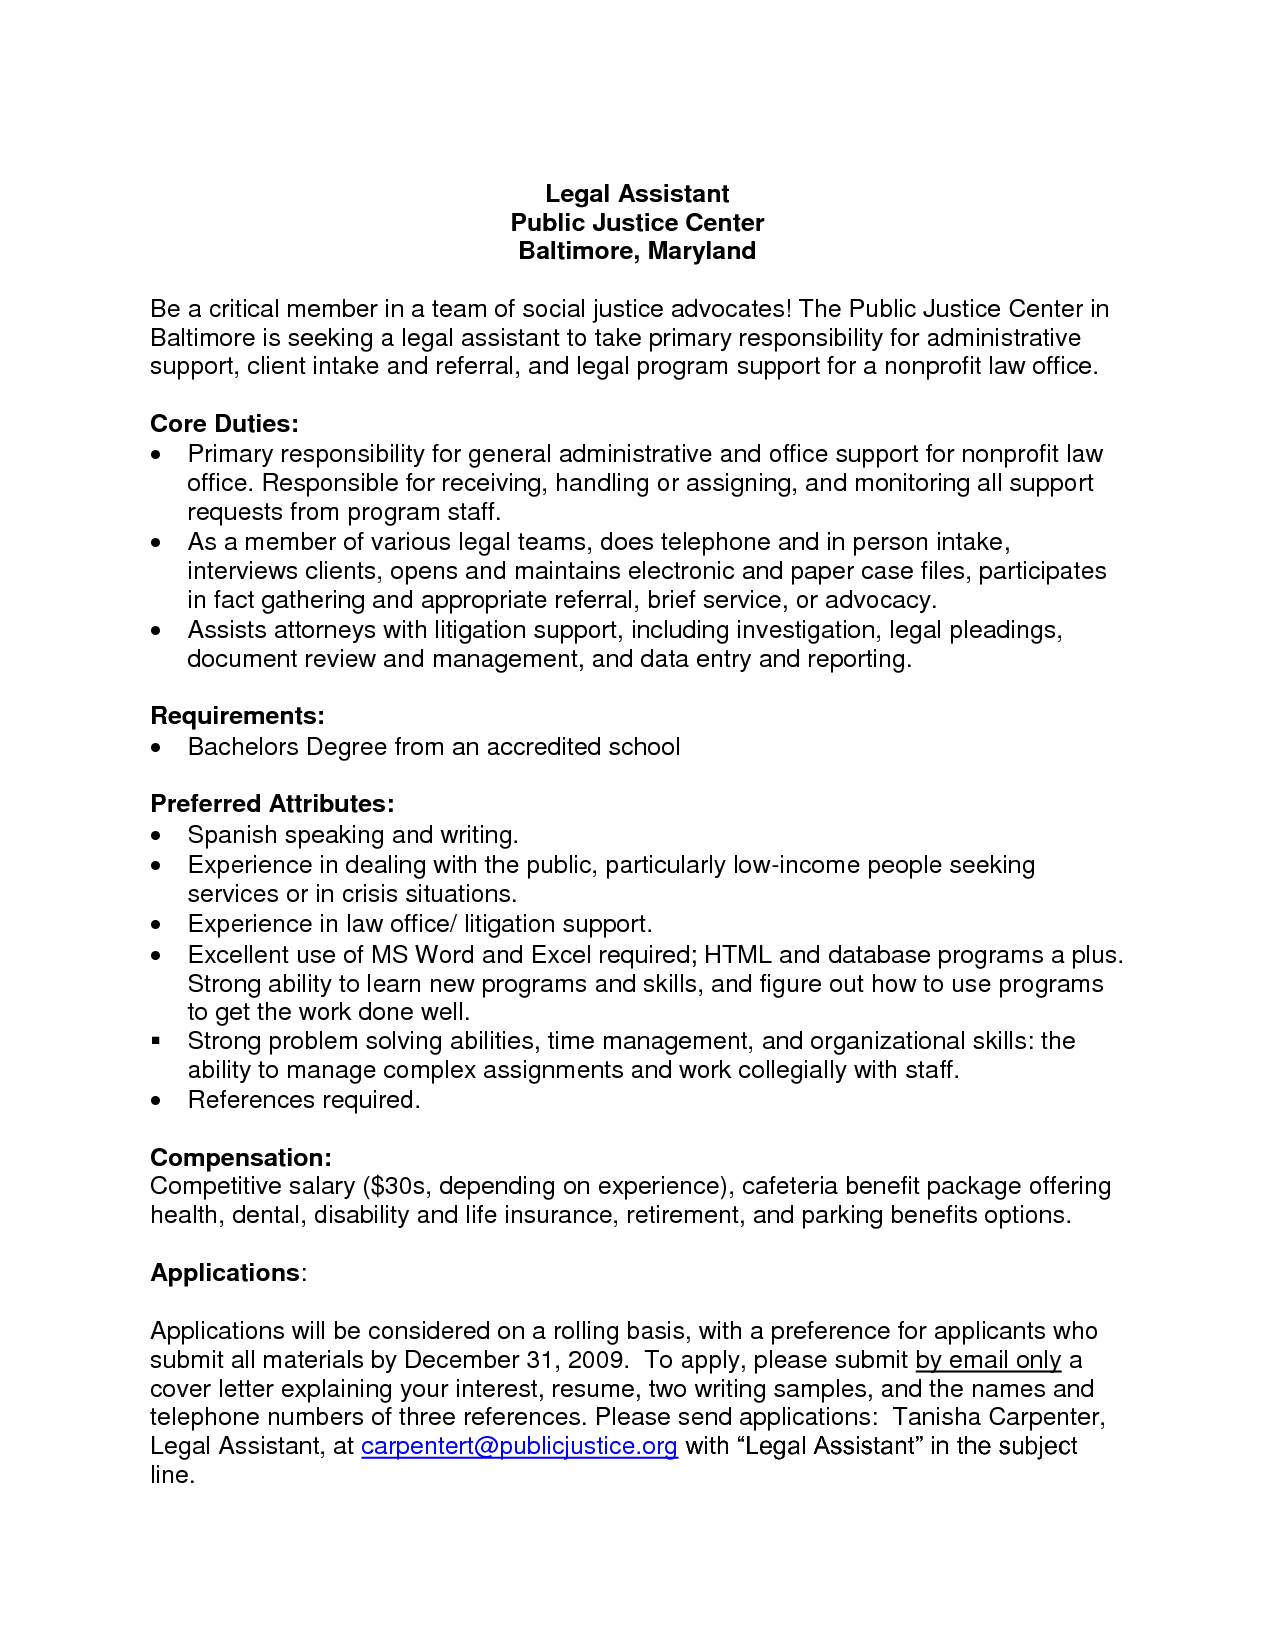 cover letter for entry level administrative assistant no experience Medical office assistant cover letter  as a highly organized and efficient professional with a variety of administrative support experience and exceptional interpersonal abilities, i am prepared to significantly contribute to your company's goals and objectives  excelling at balancing multiple tasks while providing top-level.